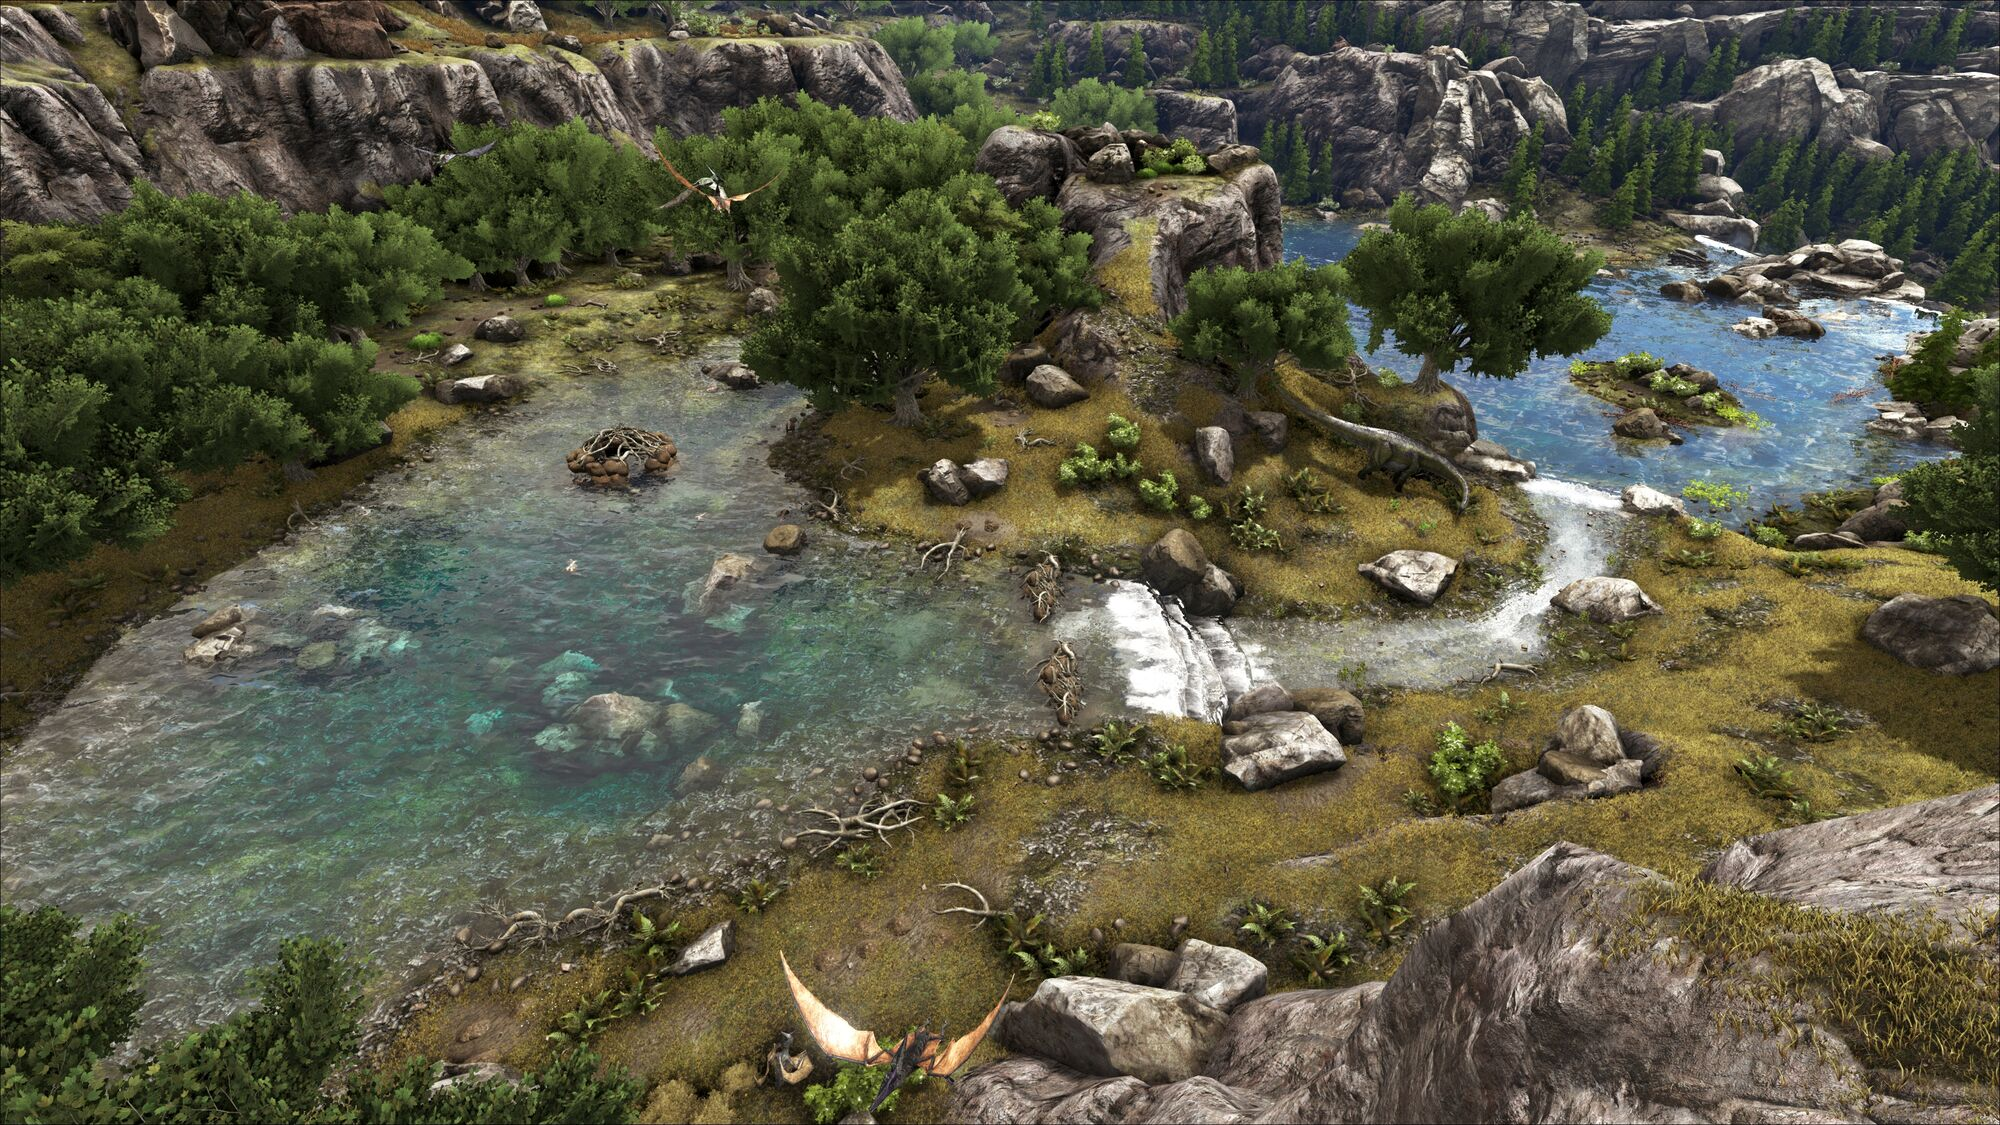 Ark The Center Resource Map Familyscopes In this guide, we will teach you tips and tricks to farm efficiently. ark the center resource map familyscopes